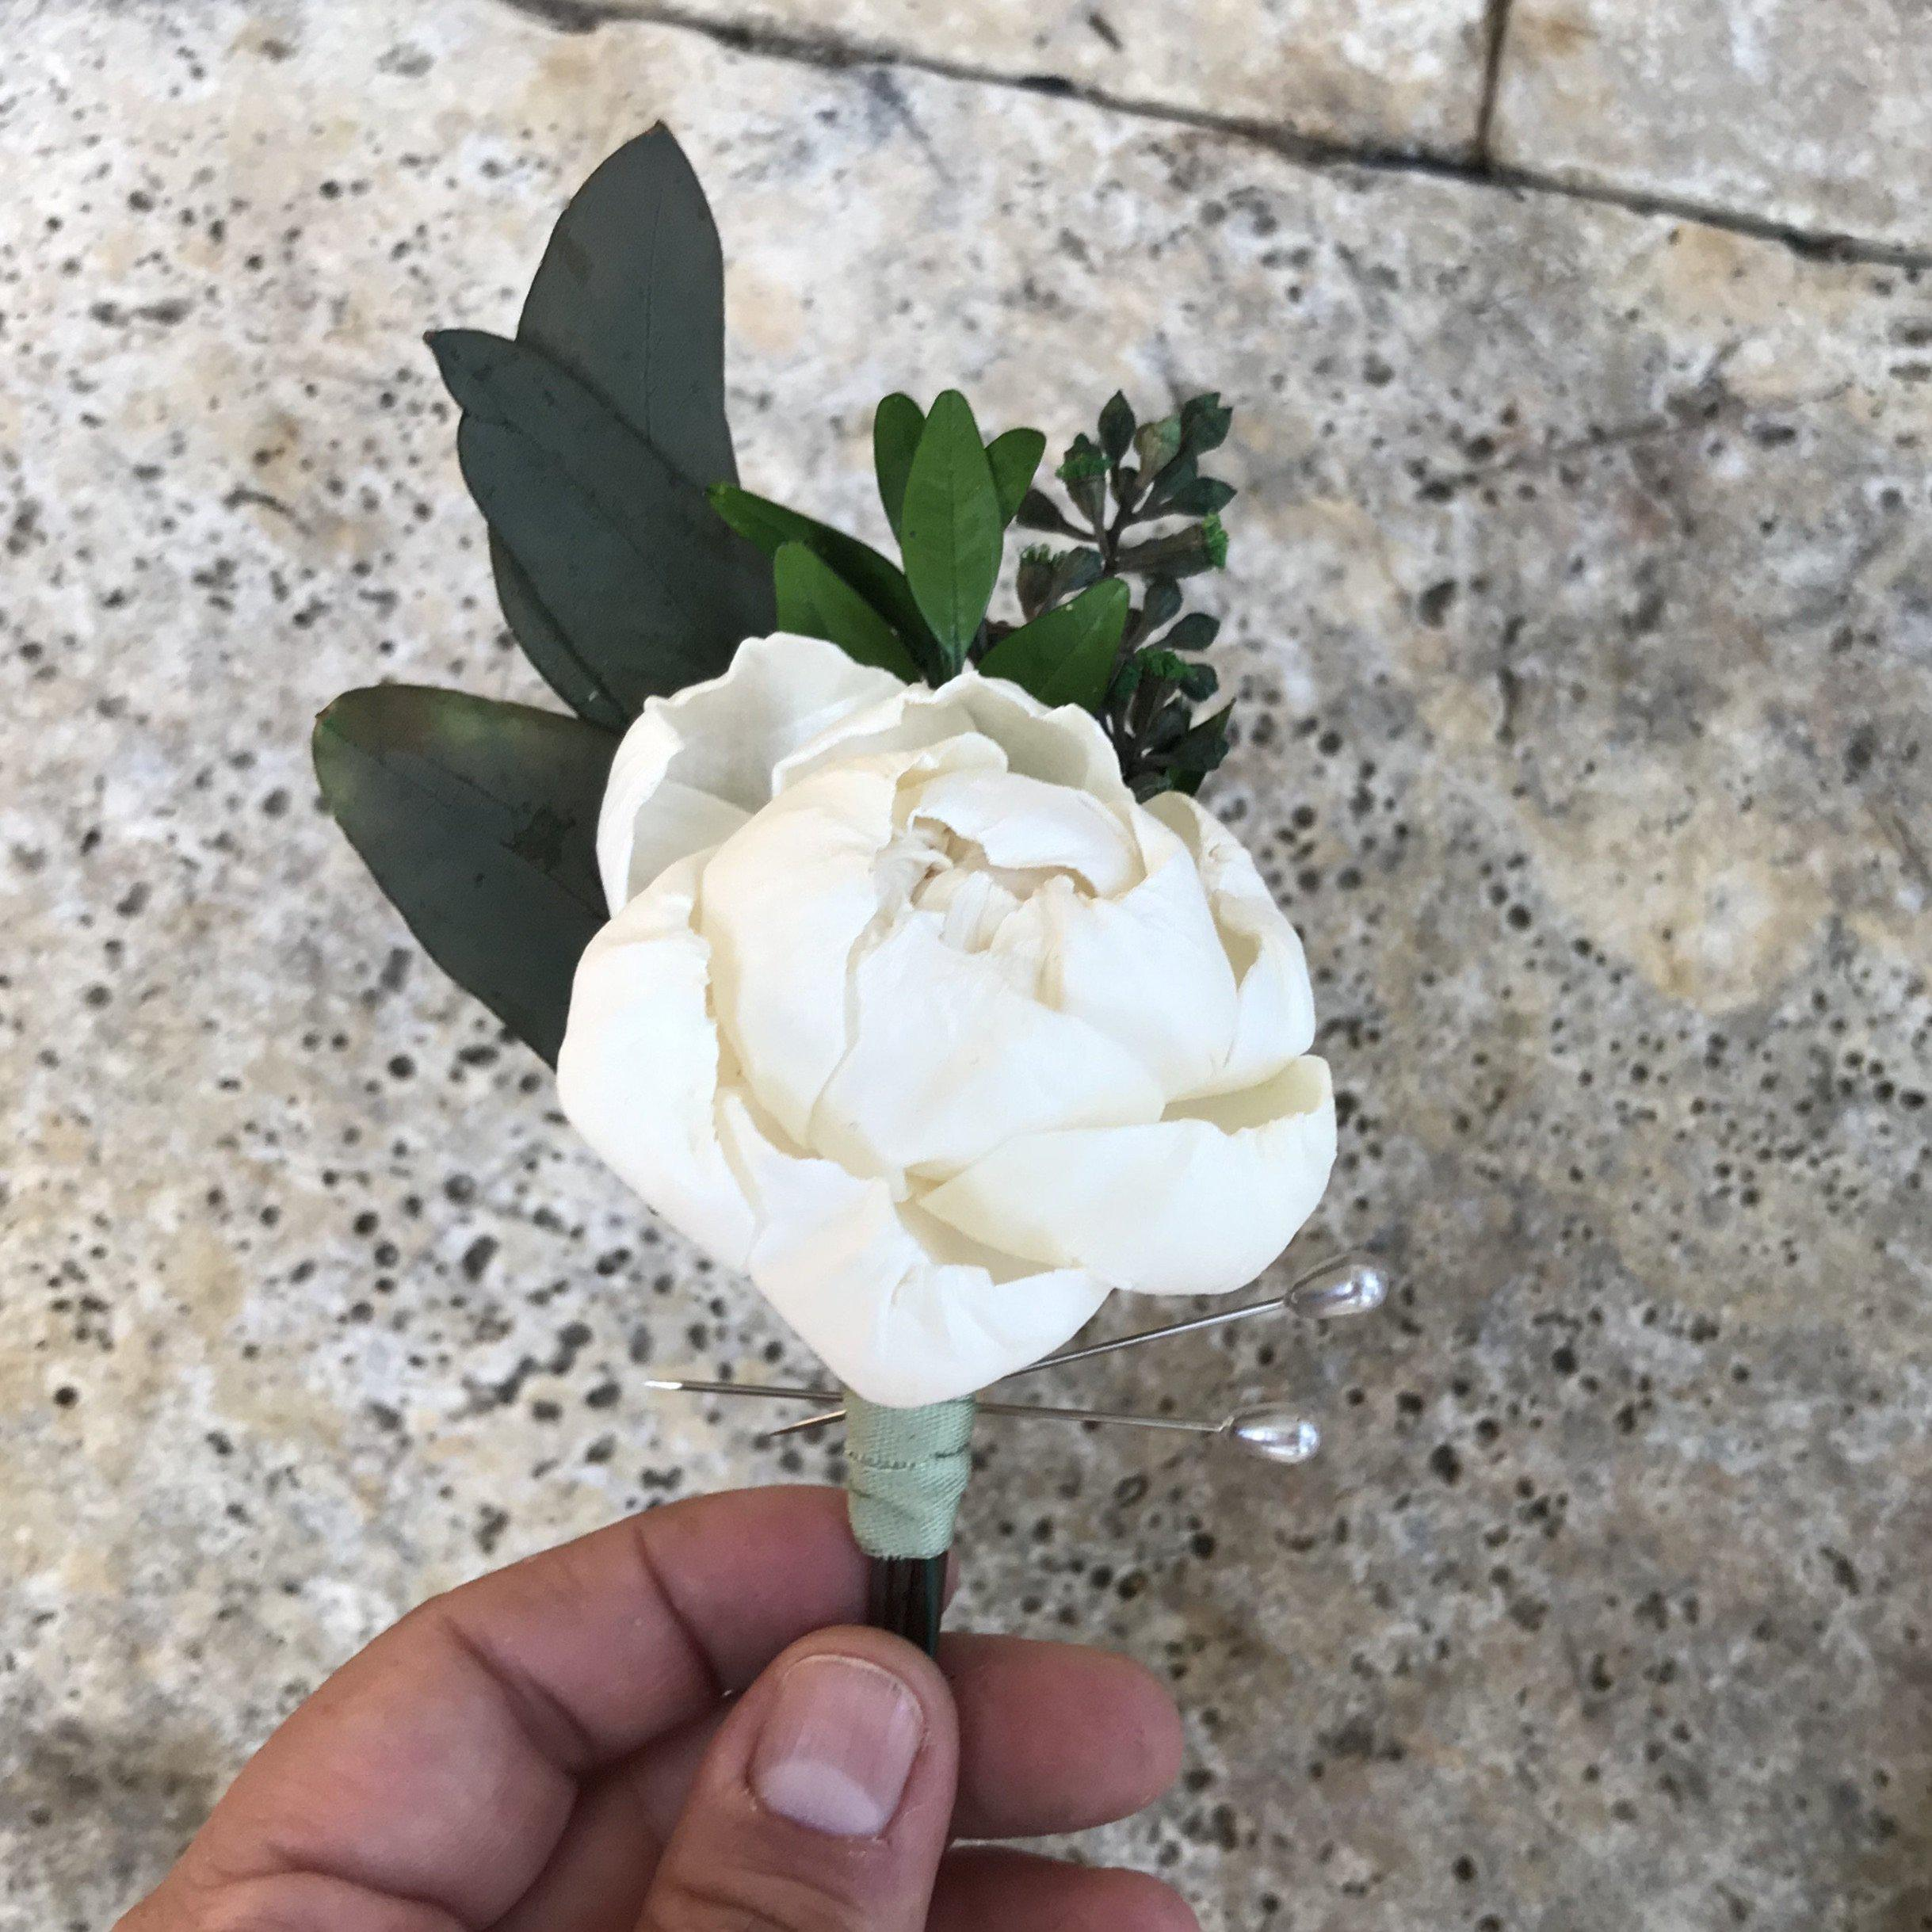 Peony Groom Boutonnière - Wood flowers Bouquets, Boutonniere, wedding Floral Decor & Accessories - Papiro Wood Flower Designs